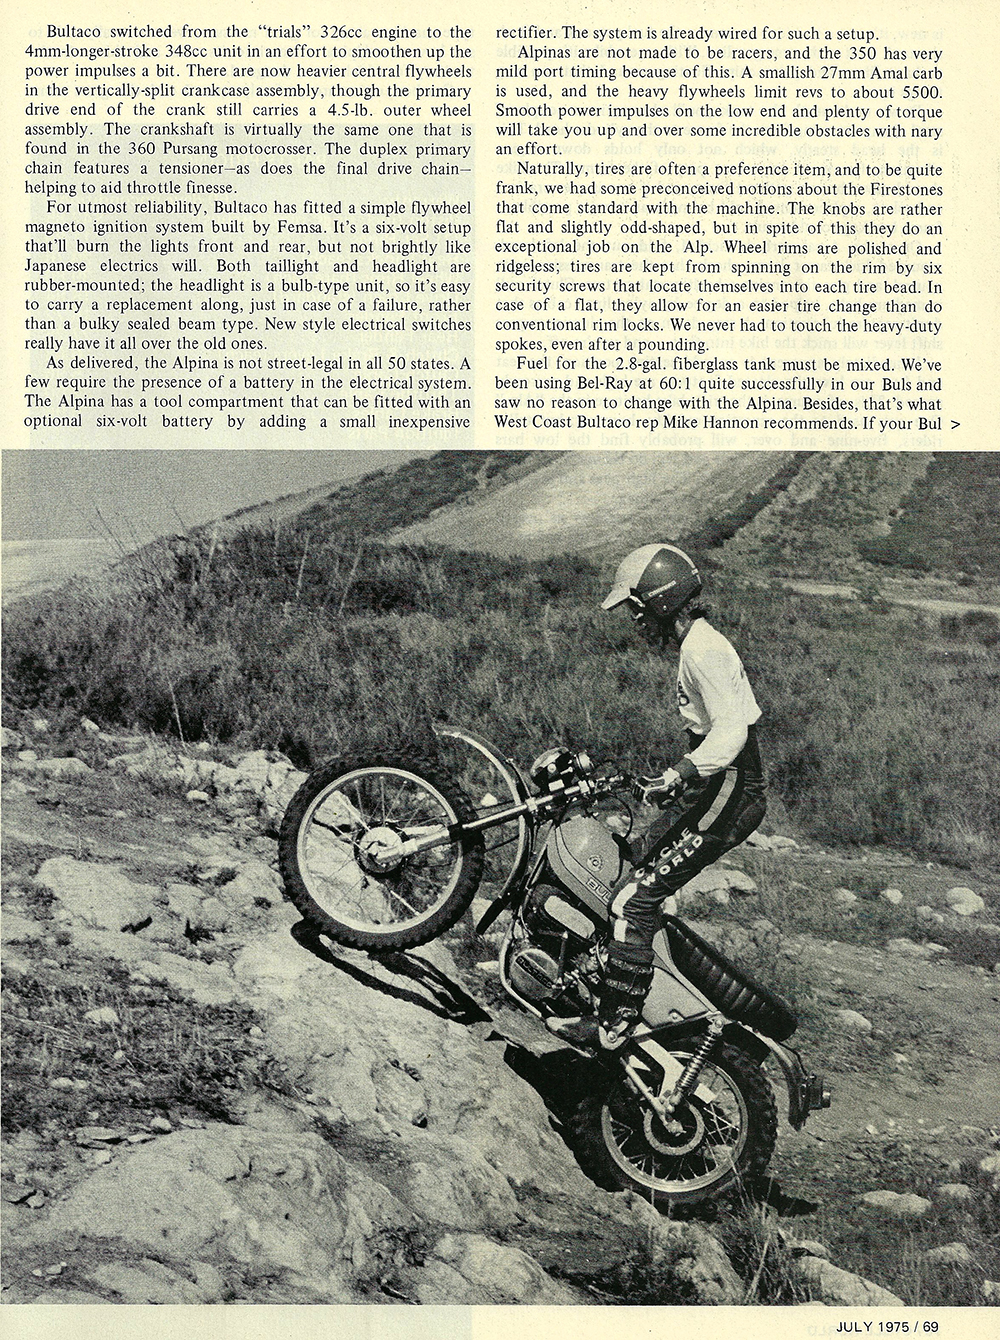 1975 Bultaco Alpina 350 road test 04.jpg